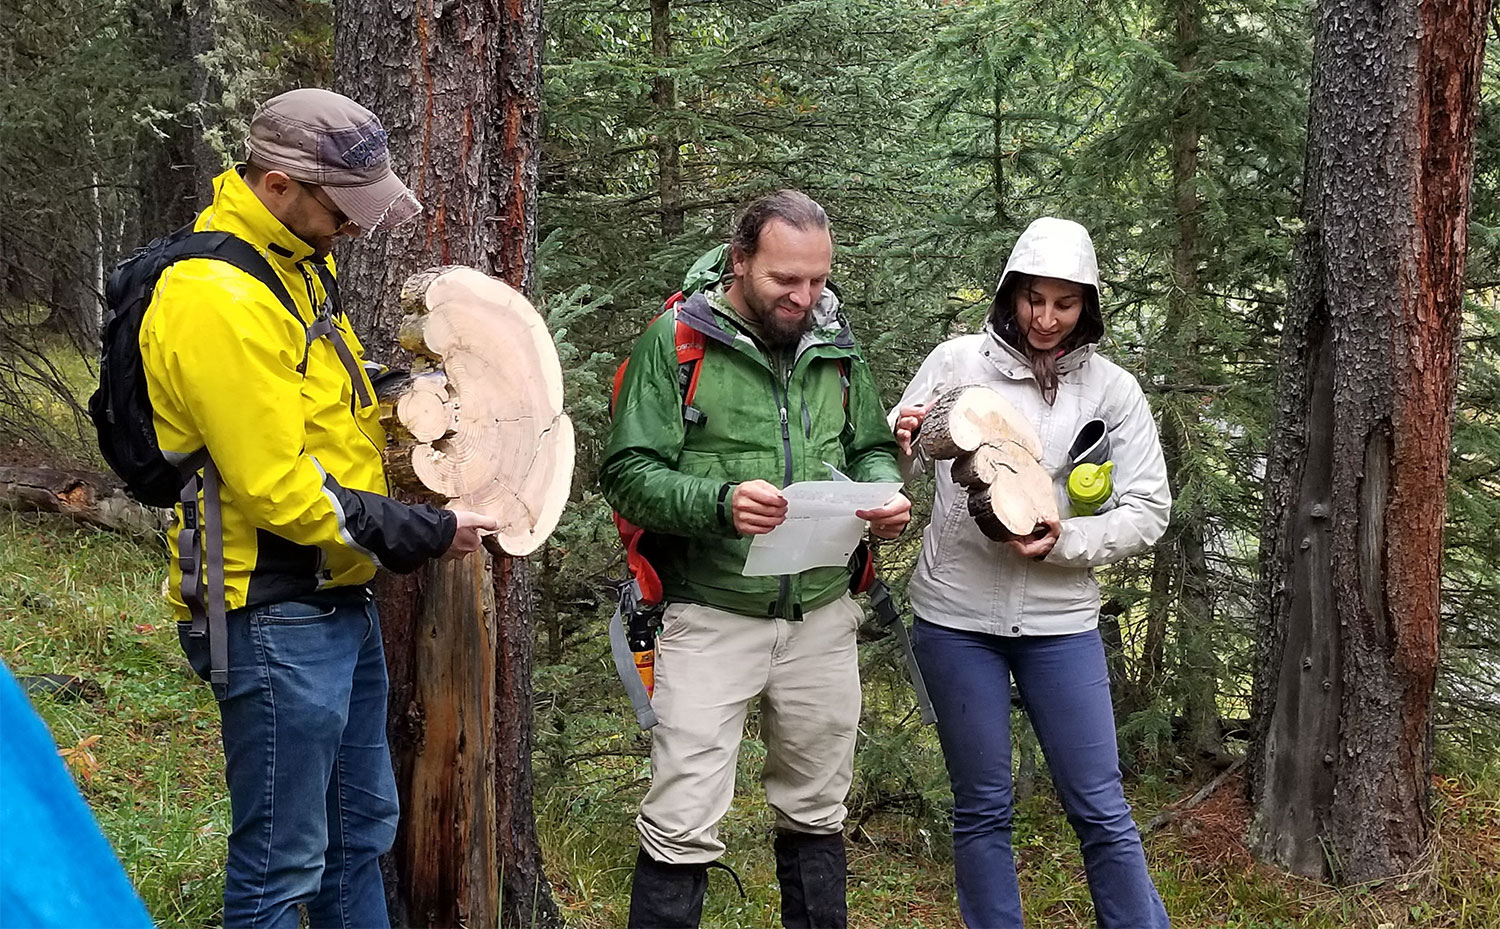 Cameron (centre) is flanked by Alex Chubaty (fRI Research) and Ceres Barros (Landscapes in Motion) as they hold up fire scarred tree cookies. Photo by S. Odsen.